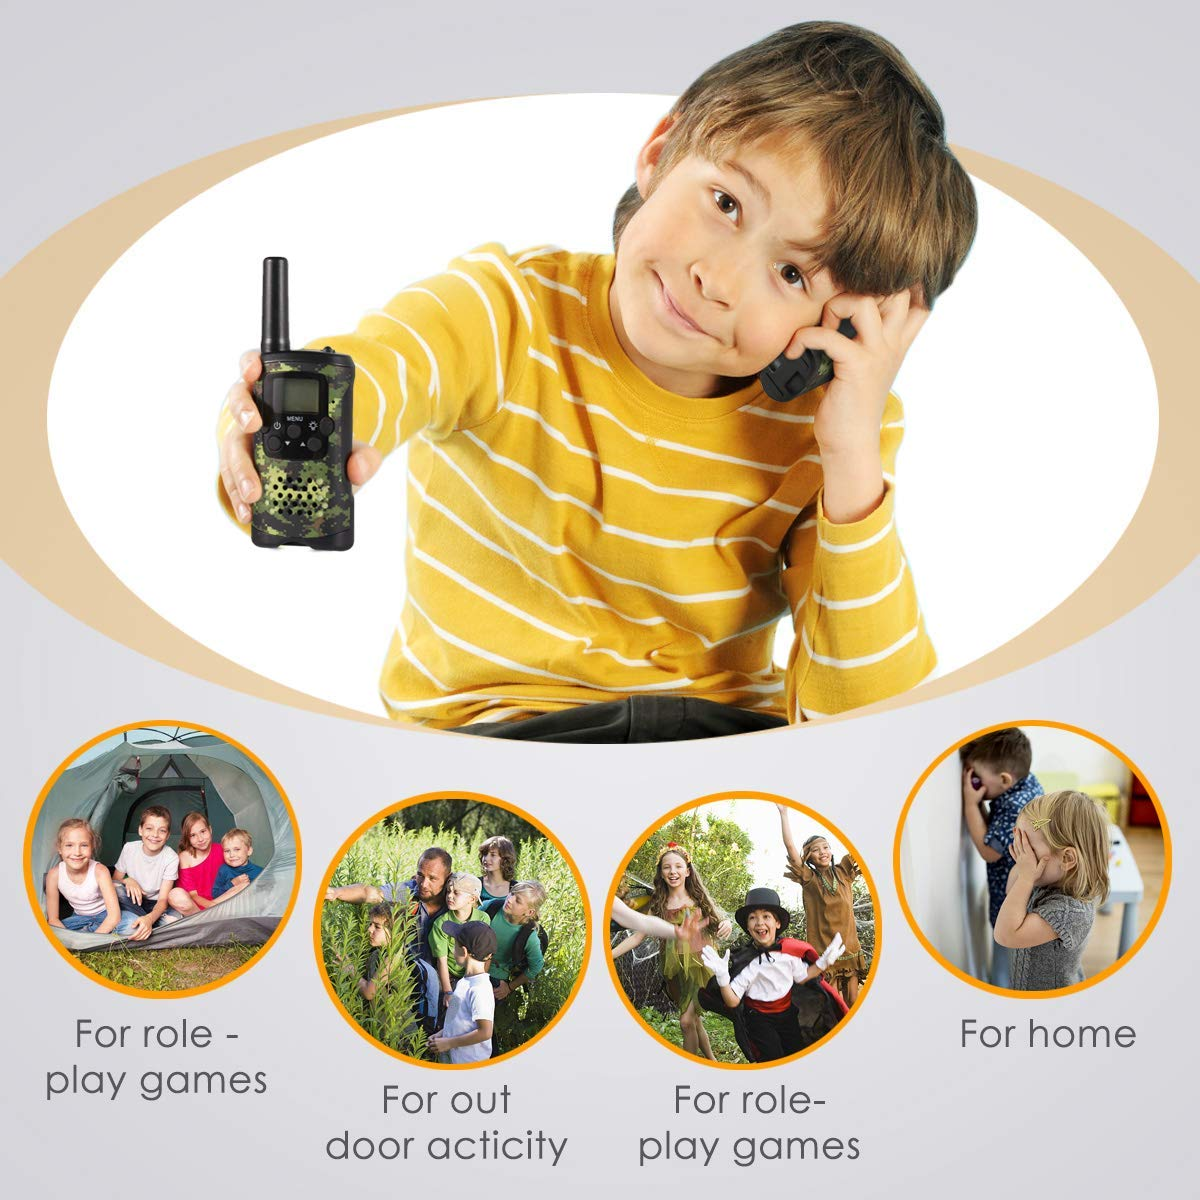 Walkie Talkies for Kids, Toys for 3-12 Year Old Boys 22 Channel 3 Mile Long Range Kids Toys and Kids Walkie Talkies, and Top Toys for for 3 4 5 6 7 8 9 Year Old Boy and Girls by UOKOO (Image #6)